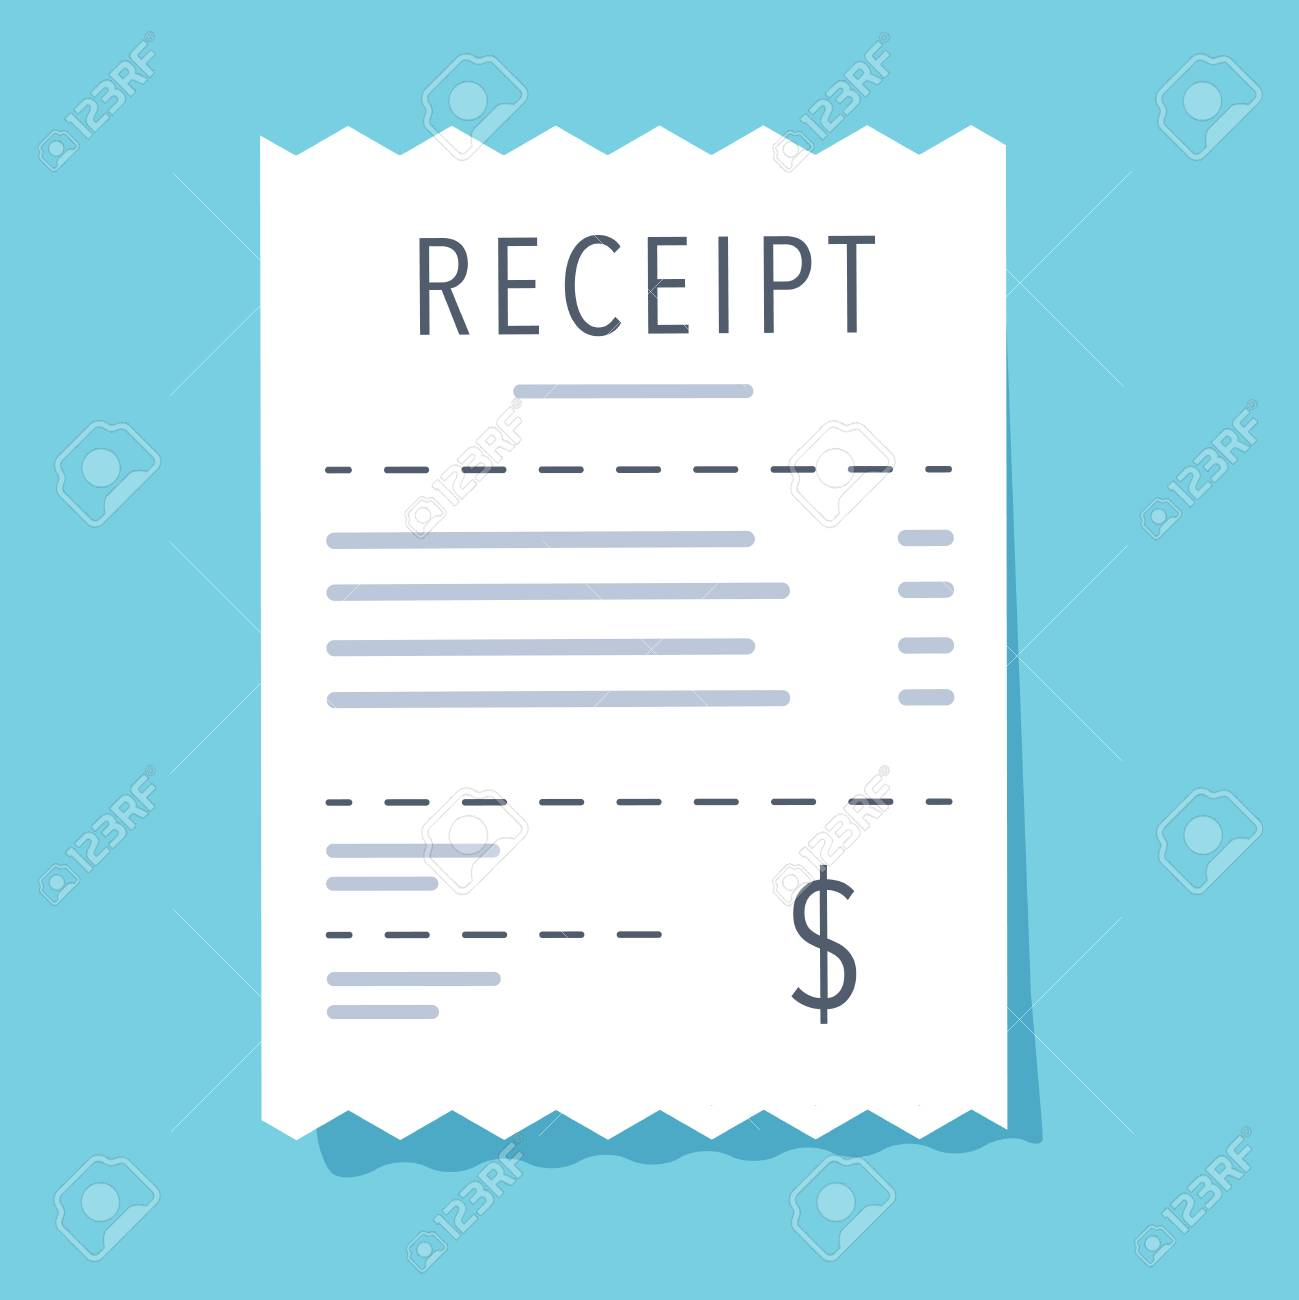 Receipt icon. Flat design. Vector illustration. Financial account, bill, invoice. Bank document icon for business website, infographic, banner. Money payment order. Purchase receipt modern vector - 124688350